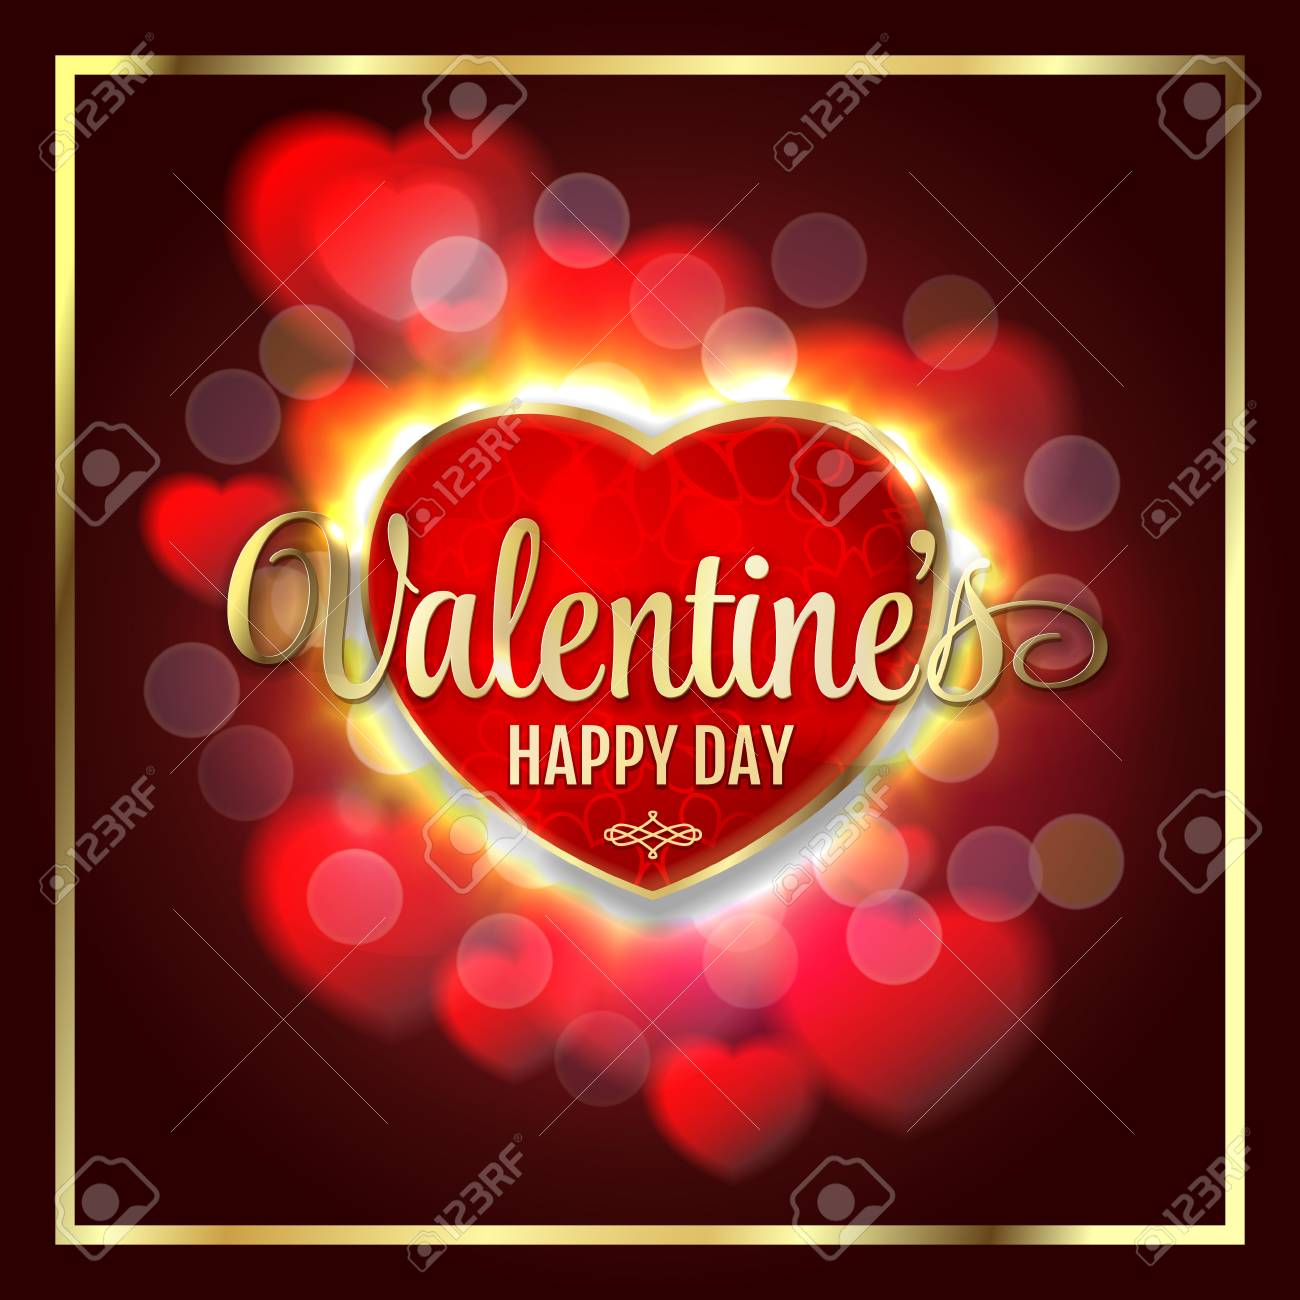 Valentines Day Background With Bright Lights Hearts Royalty Free